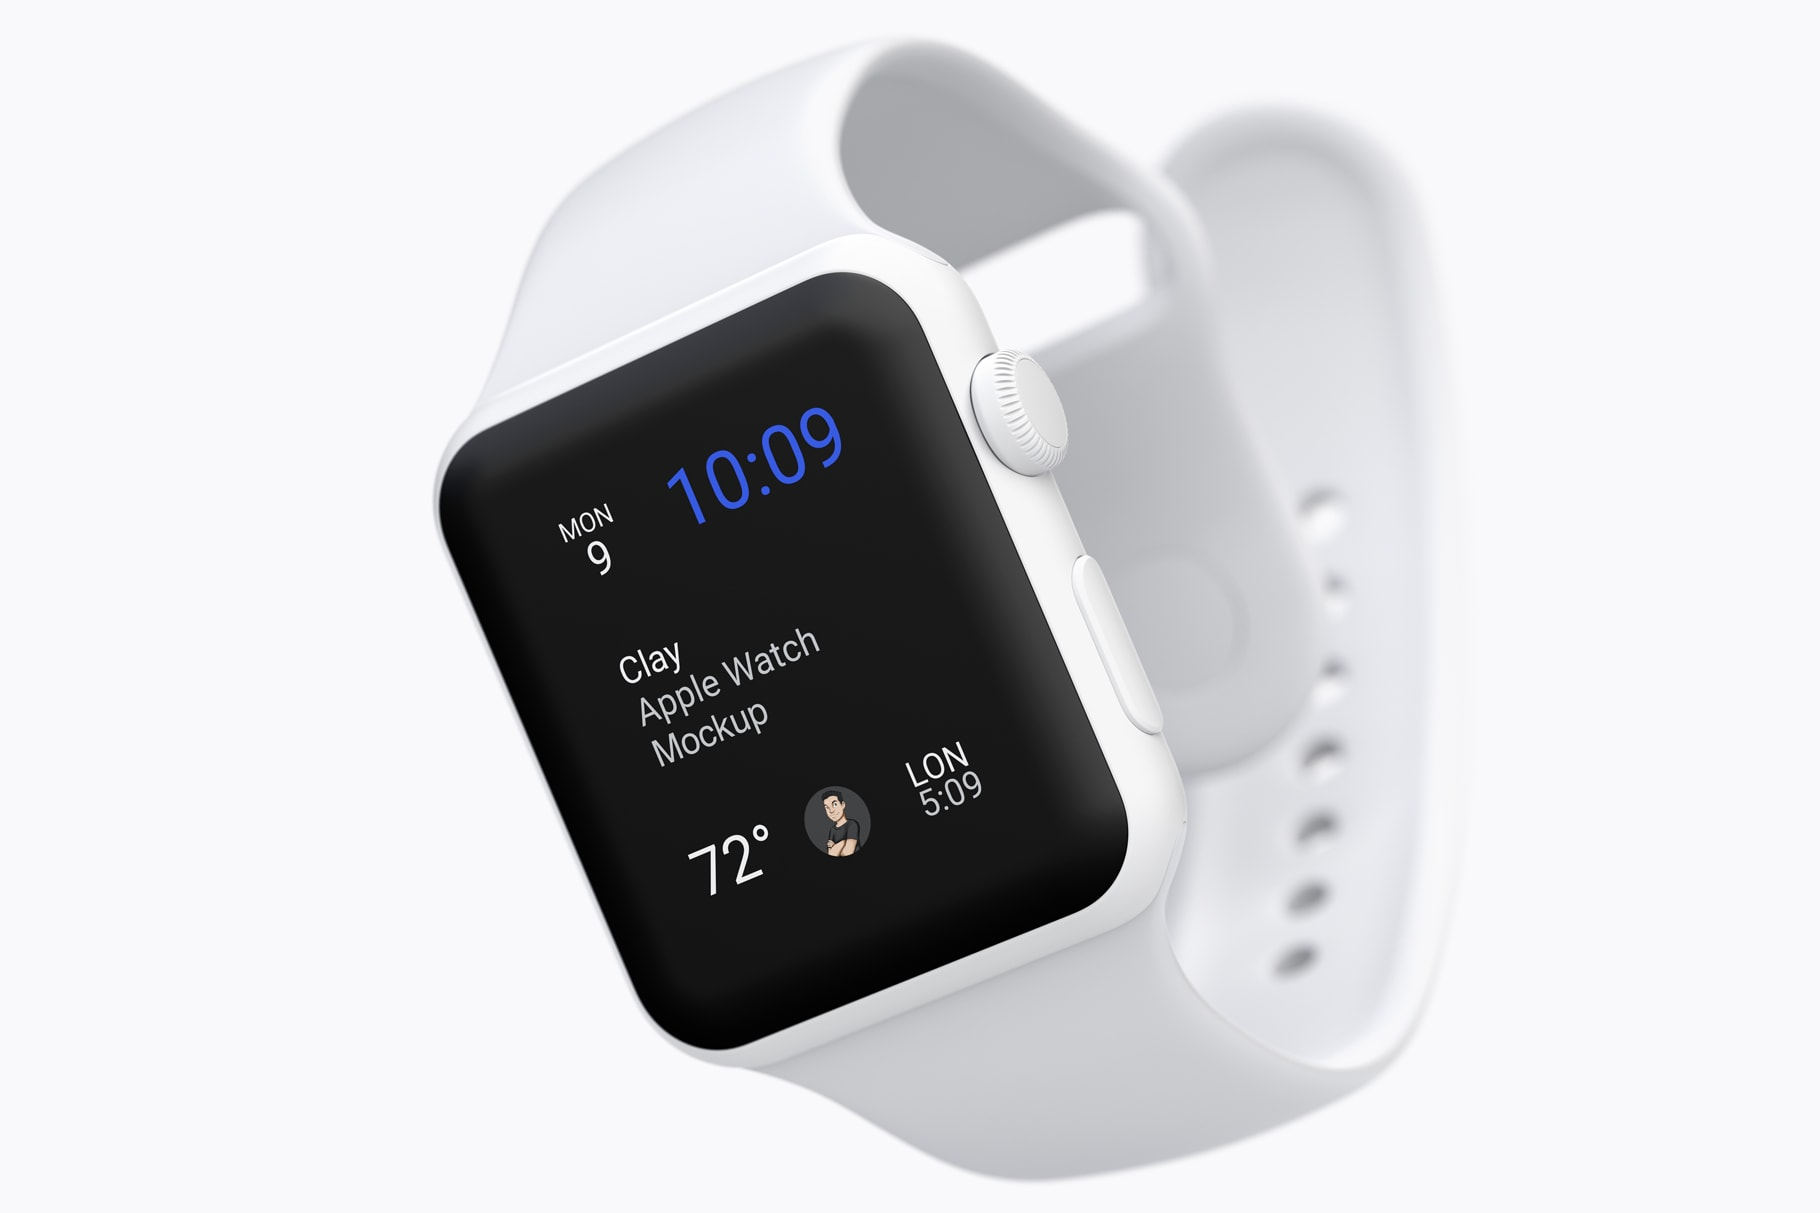 Clay Apple Watch Mockup to present WatchOS Apps